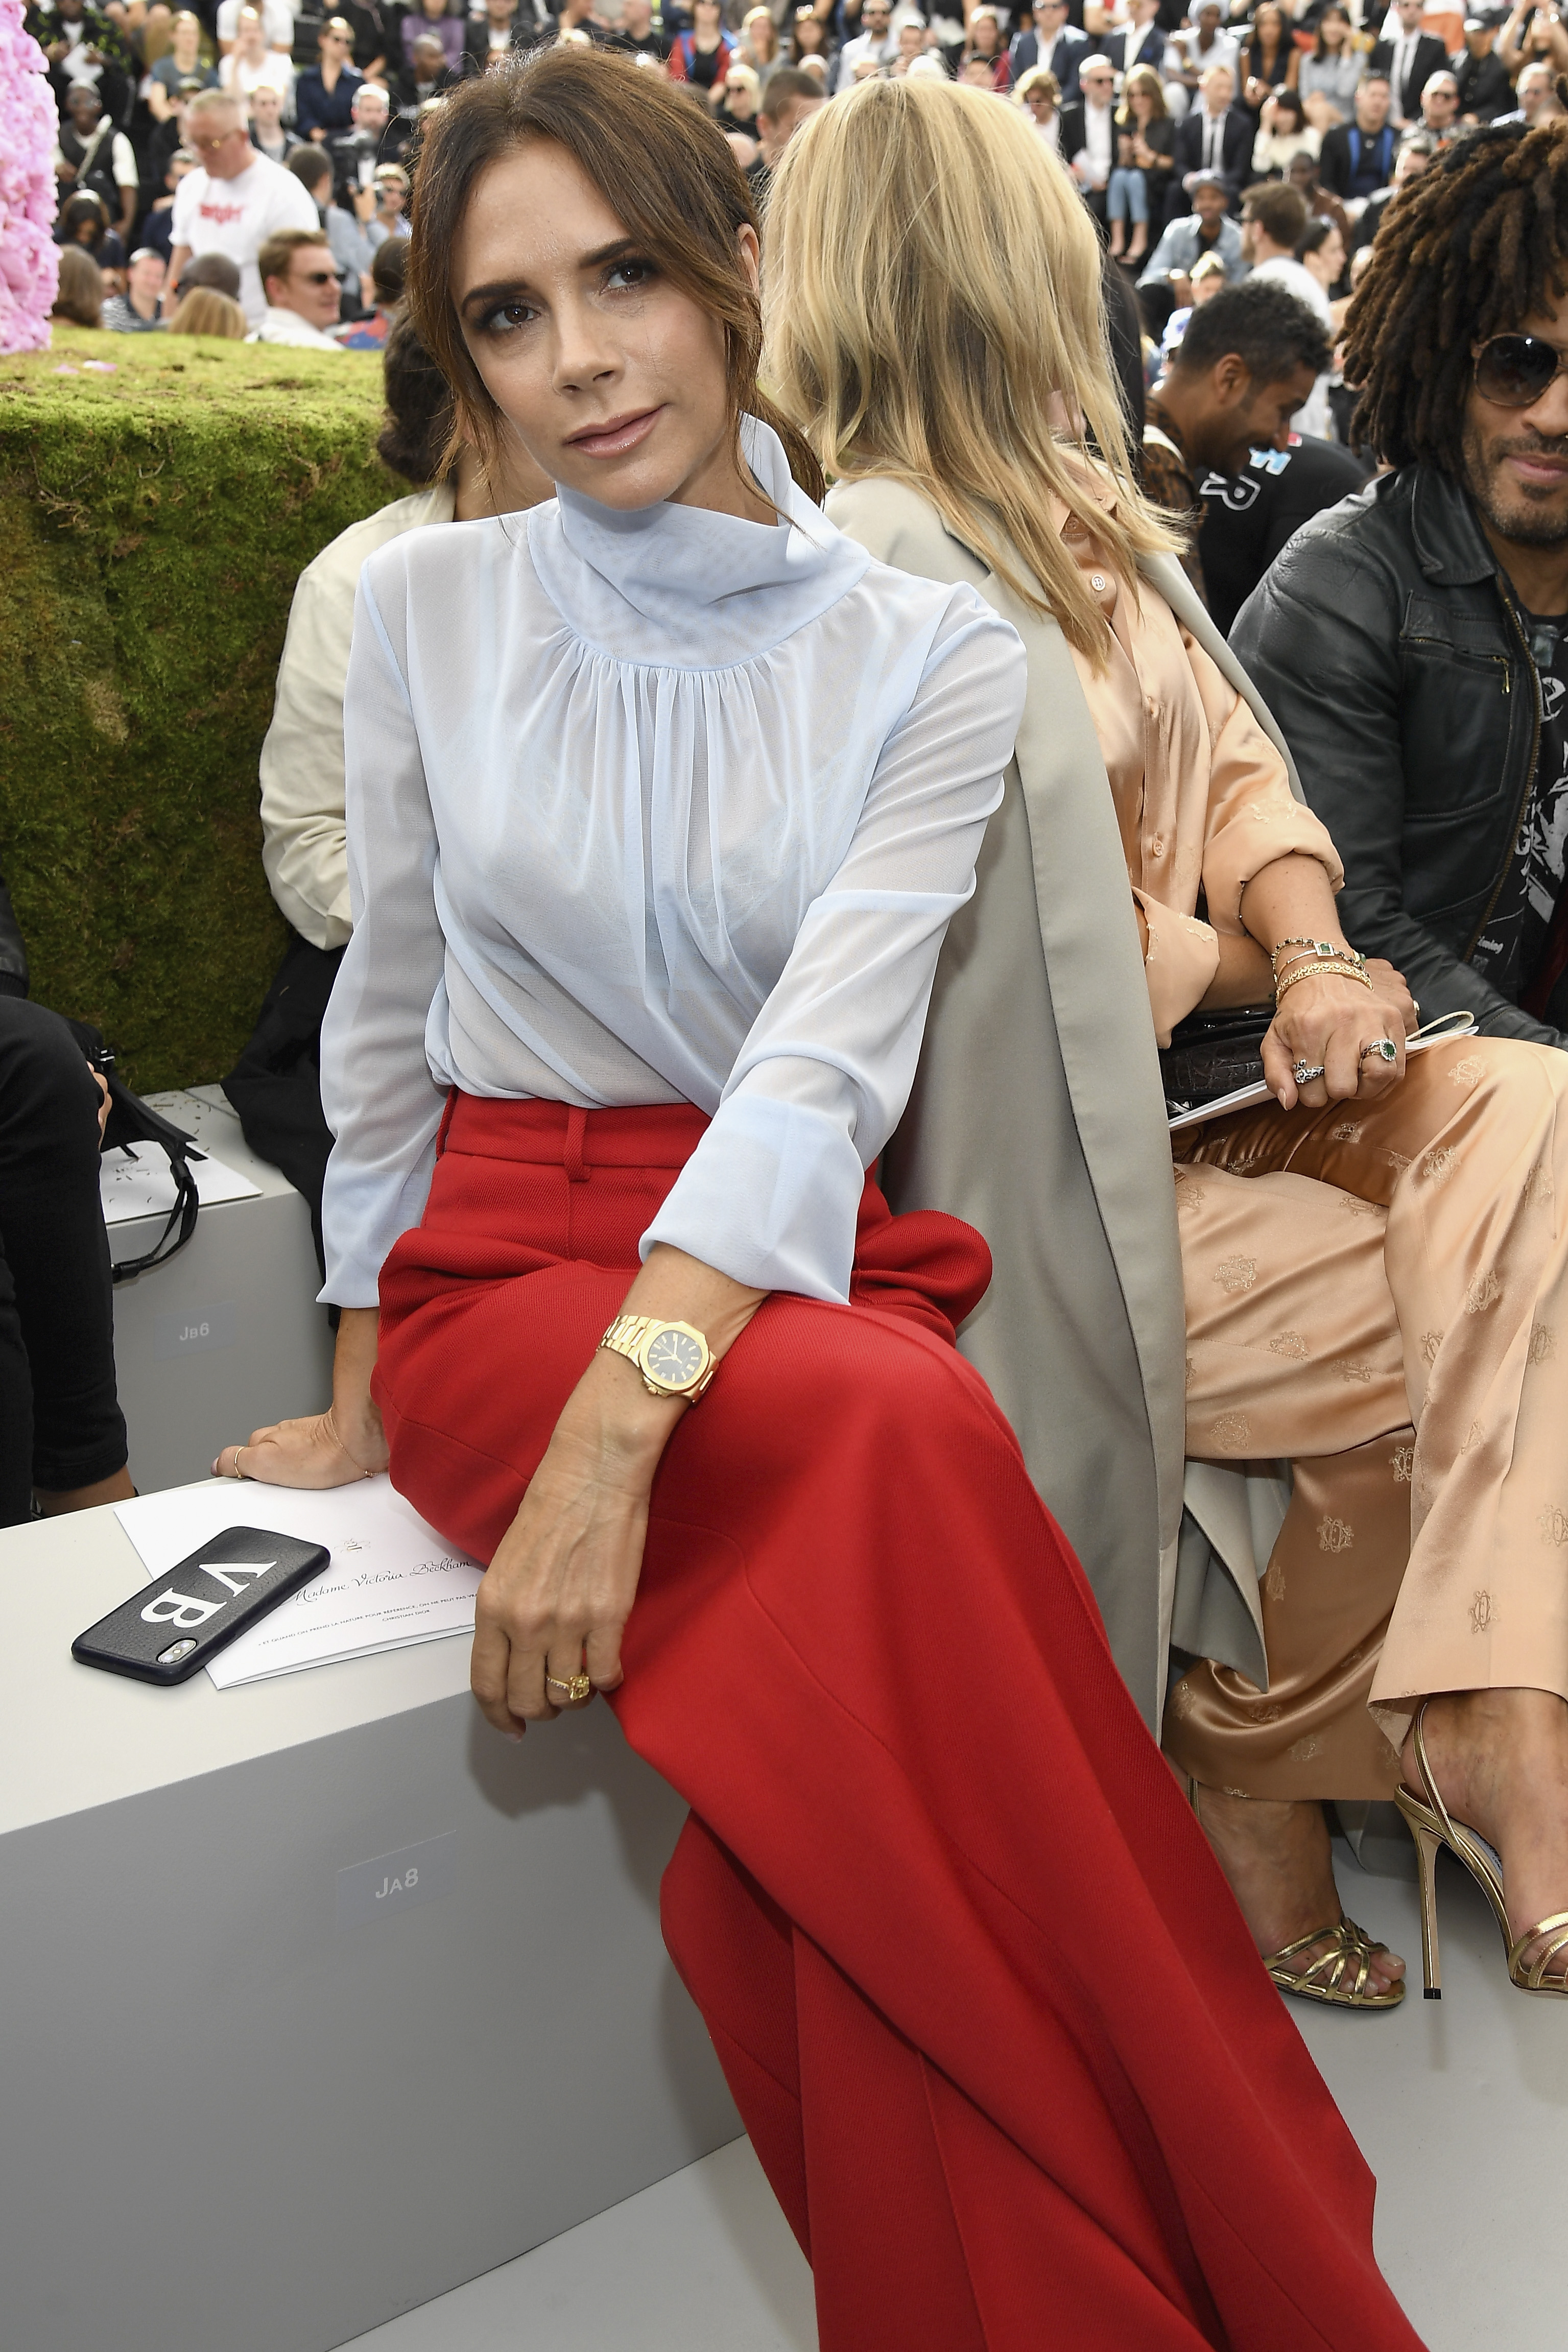 """<a href=""""http://https://style.nine.com.au/2018/02/15/09/05/victoria-beckham-style-evolution"""" target=""""_blank"""" title=""""Victoria Beckham's evolution from Spice Girl to style icon"""" draggable=""""false"""">Victoria Beckham's evolution from Spice Girl to style icon</a> is arguably fashion's greatest Cinderella story. <br /> <br /> Despite cutting ties with denim hotpants and floor-length hair extensions, the designer still has room in her walk-in-wardrobe for one excessive extravagance– engagement rings.<br /> <br /> The former pop star has been spotted wearing 14 different types of eye candy on her finger during her 19 years of marriage to husband, David, with the latest making its debut at Paris Fashion Week over the weekend.<br /> <br /> Clad in a red and white pantsuit of her own design, at Dior Homme's menswear S/'S'19 show, the designer showed off her latest ring- a square-cut yellow diamond set on a platinum pave band- worth an estimated $21, 4195, according to the <em><a href=""""http://http://www.dailymail.co.uk/tvshowbiz/article-5905001/Victoria-Posh-Beckham-shows-4-engagement-rings-David-Beckham.html"""" target=""""_blank"""" title=""""Daily Mail."""" draggable=""""false"""">Daily Mail.</a></em><br /> <br /> The sudden appearance of a new rock on VB's manicured finger comes at a time when the high-profile pair, who tied the knot in July 1999, have been fighting off <a href=""""https://style.nine.com.au/2018/06/12/13/49/david-and-victoria-beckham-kent-and-curwen"""" target=""""_blank"""" title=""""recent divorce rumours."""" draggable=""""false"""">recent divorce rumours.</a><br /> <br /> """"There is no statement due, no divorce, and a lot of Chinese whispers and fake social media news. This is all very bizarre and an embarrassing waste of time,"""" a representative of the pair told <em>The Sun </em>in June.<br /> <br /> The Beckhams announced their engagement in January 1998, with VB donning a three-carat marquise-cut diamond set on a plain yellow-gold band.<br /> <br /> Click through to see the entire engagement ring c"""